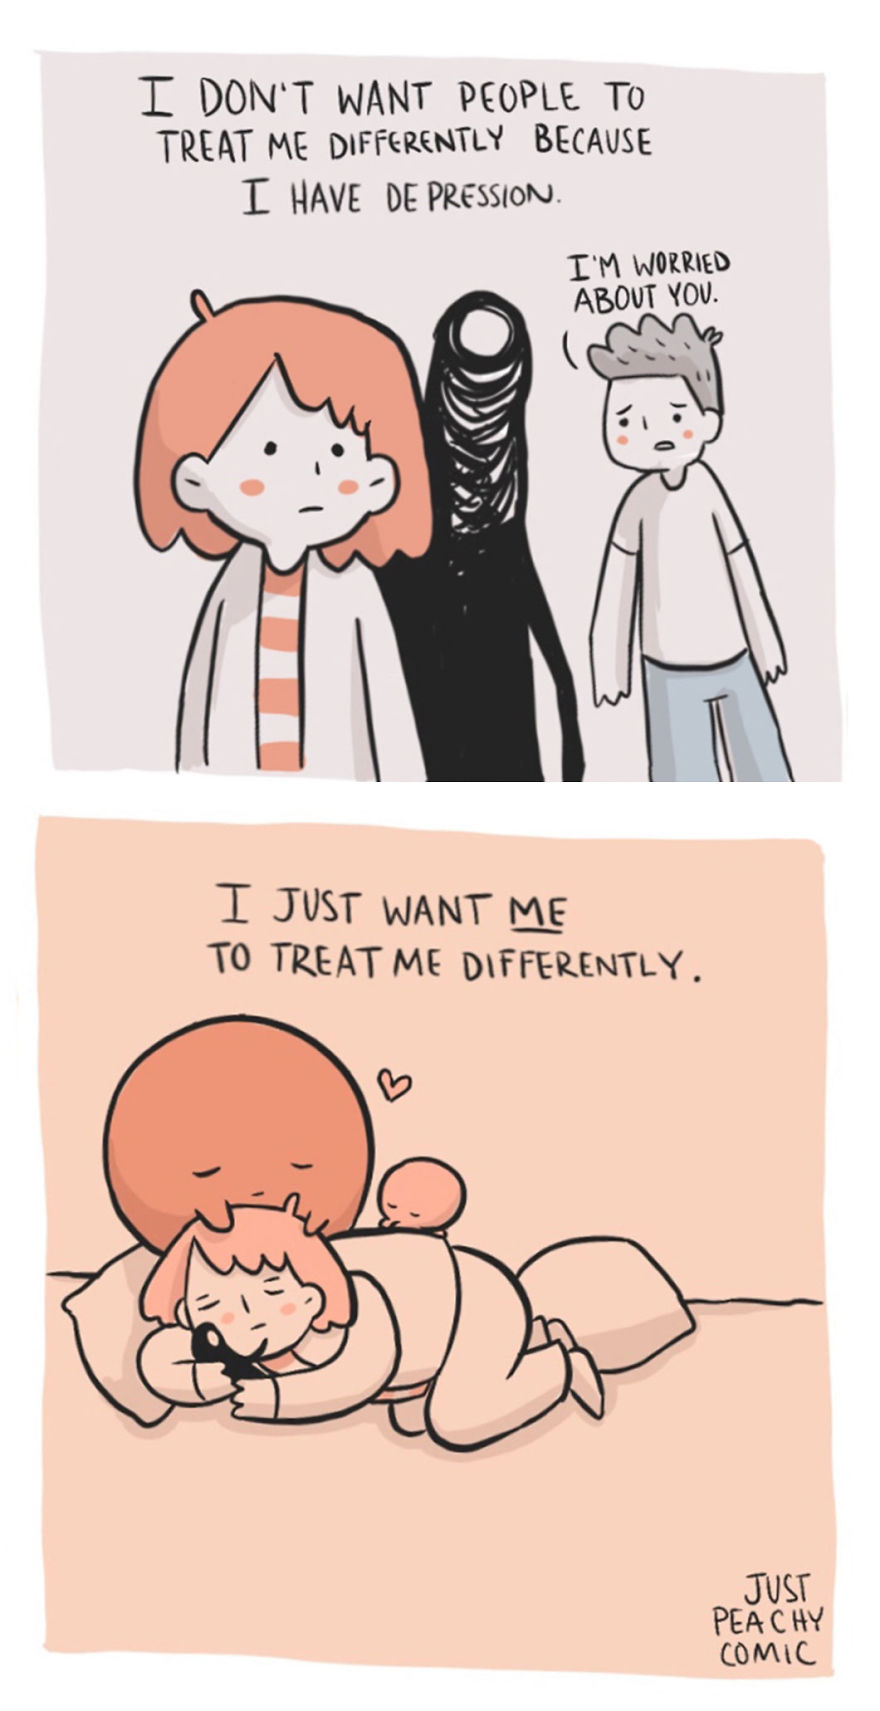 These Comics Perfectly Describe What It's Like To Have Depression And Anxiety